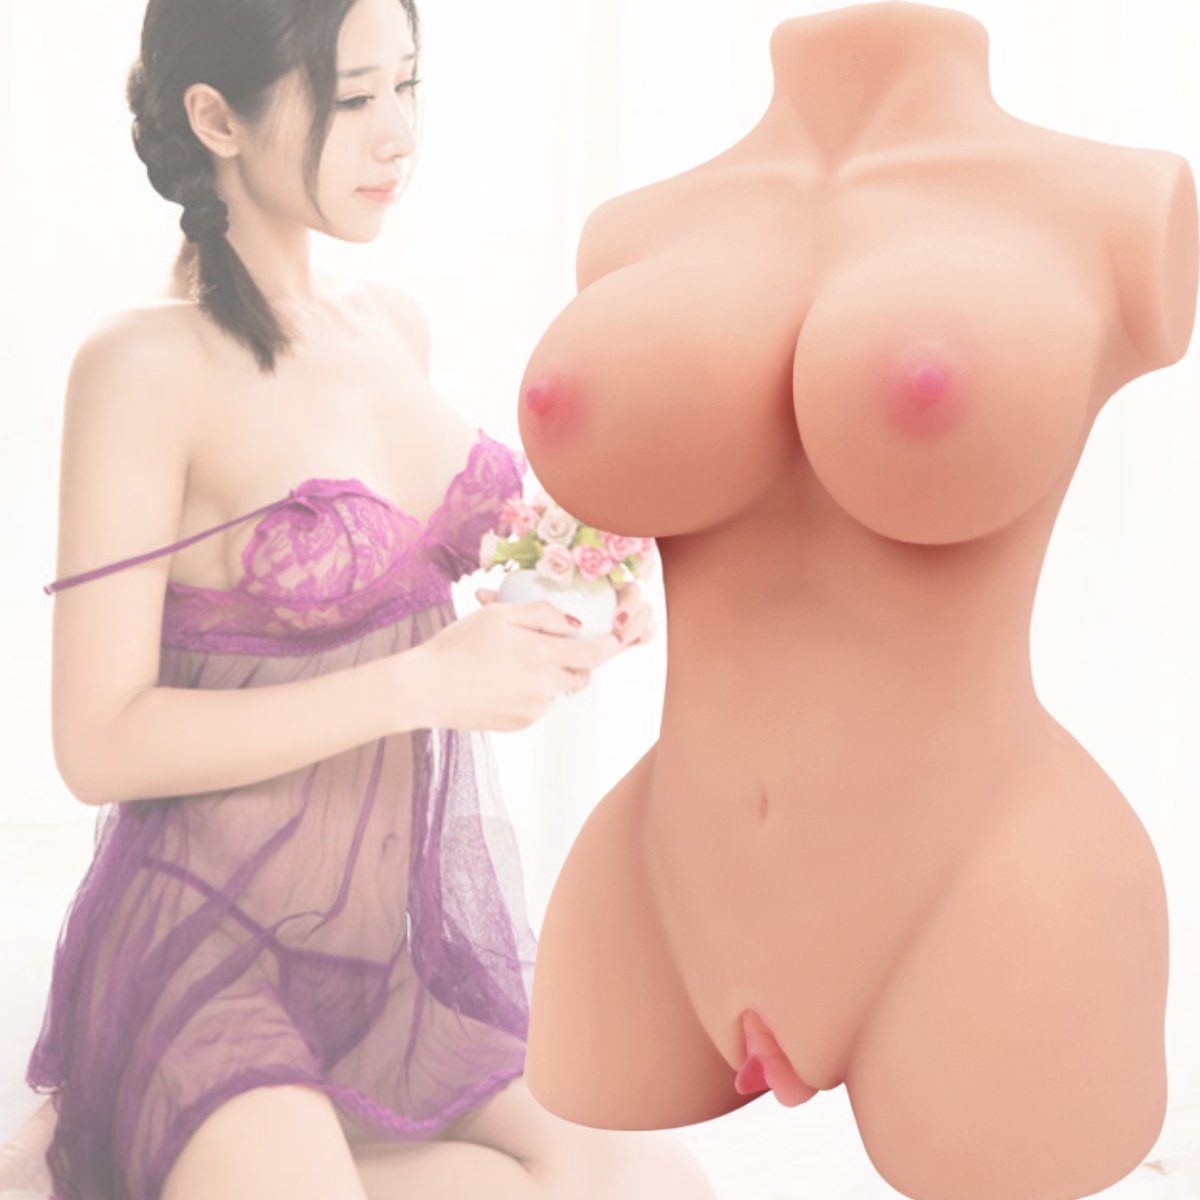 Sex Doll Male Masturbator Realistic 3D Adult Love Toy for Men Masturbation Stroker with Pussy Ass Vagina and Anal 2 Holes Lifelike Pussycat TPE Doll for Men Silicone Women Torso Sex Toy